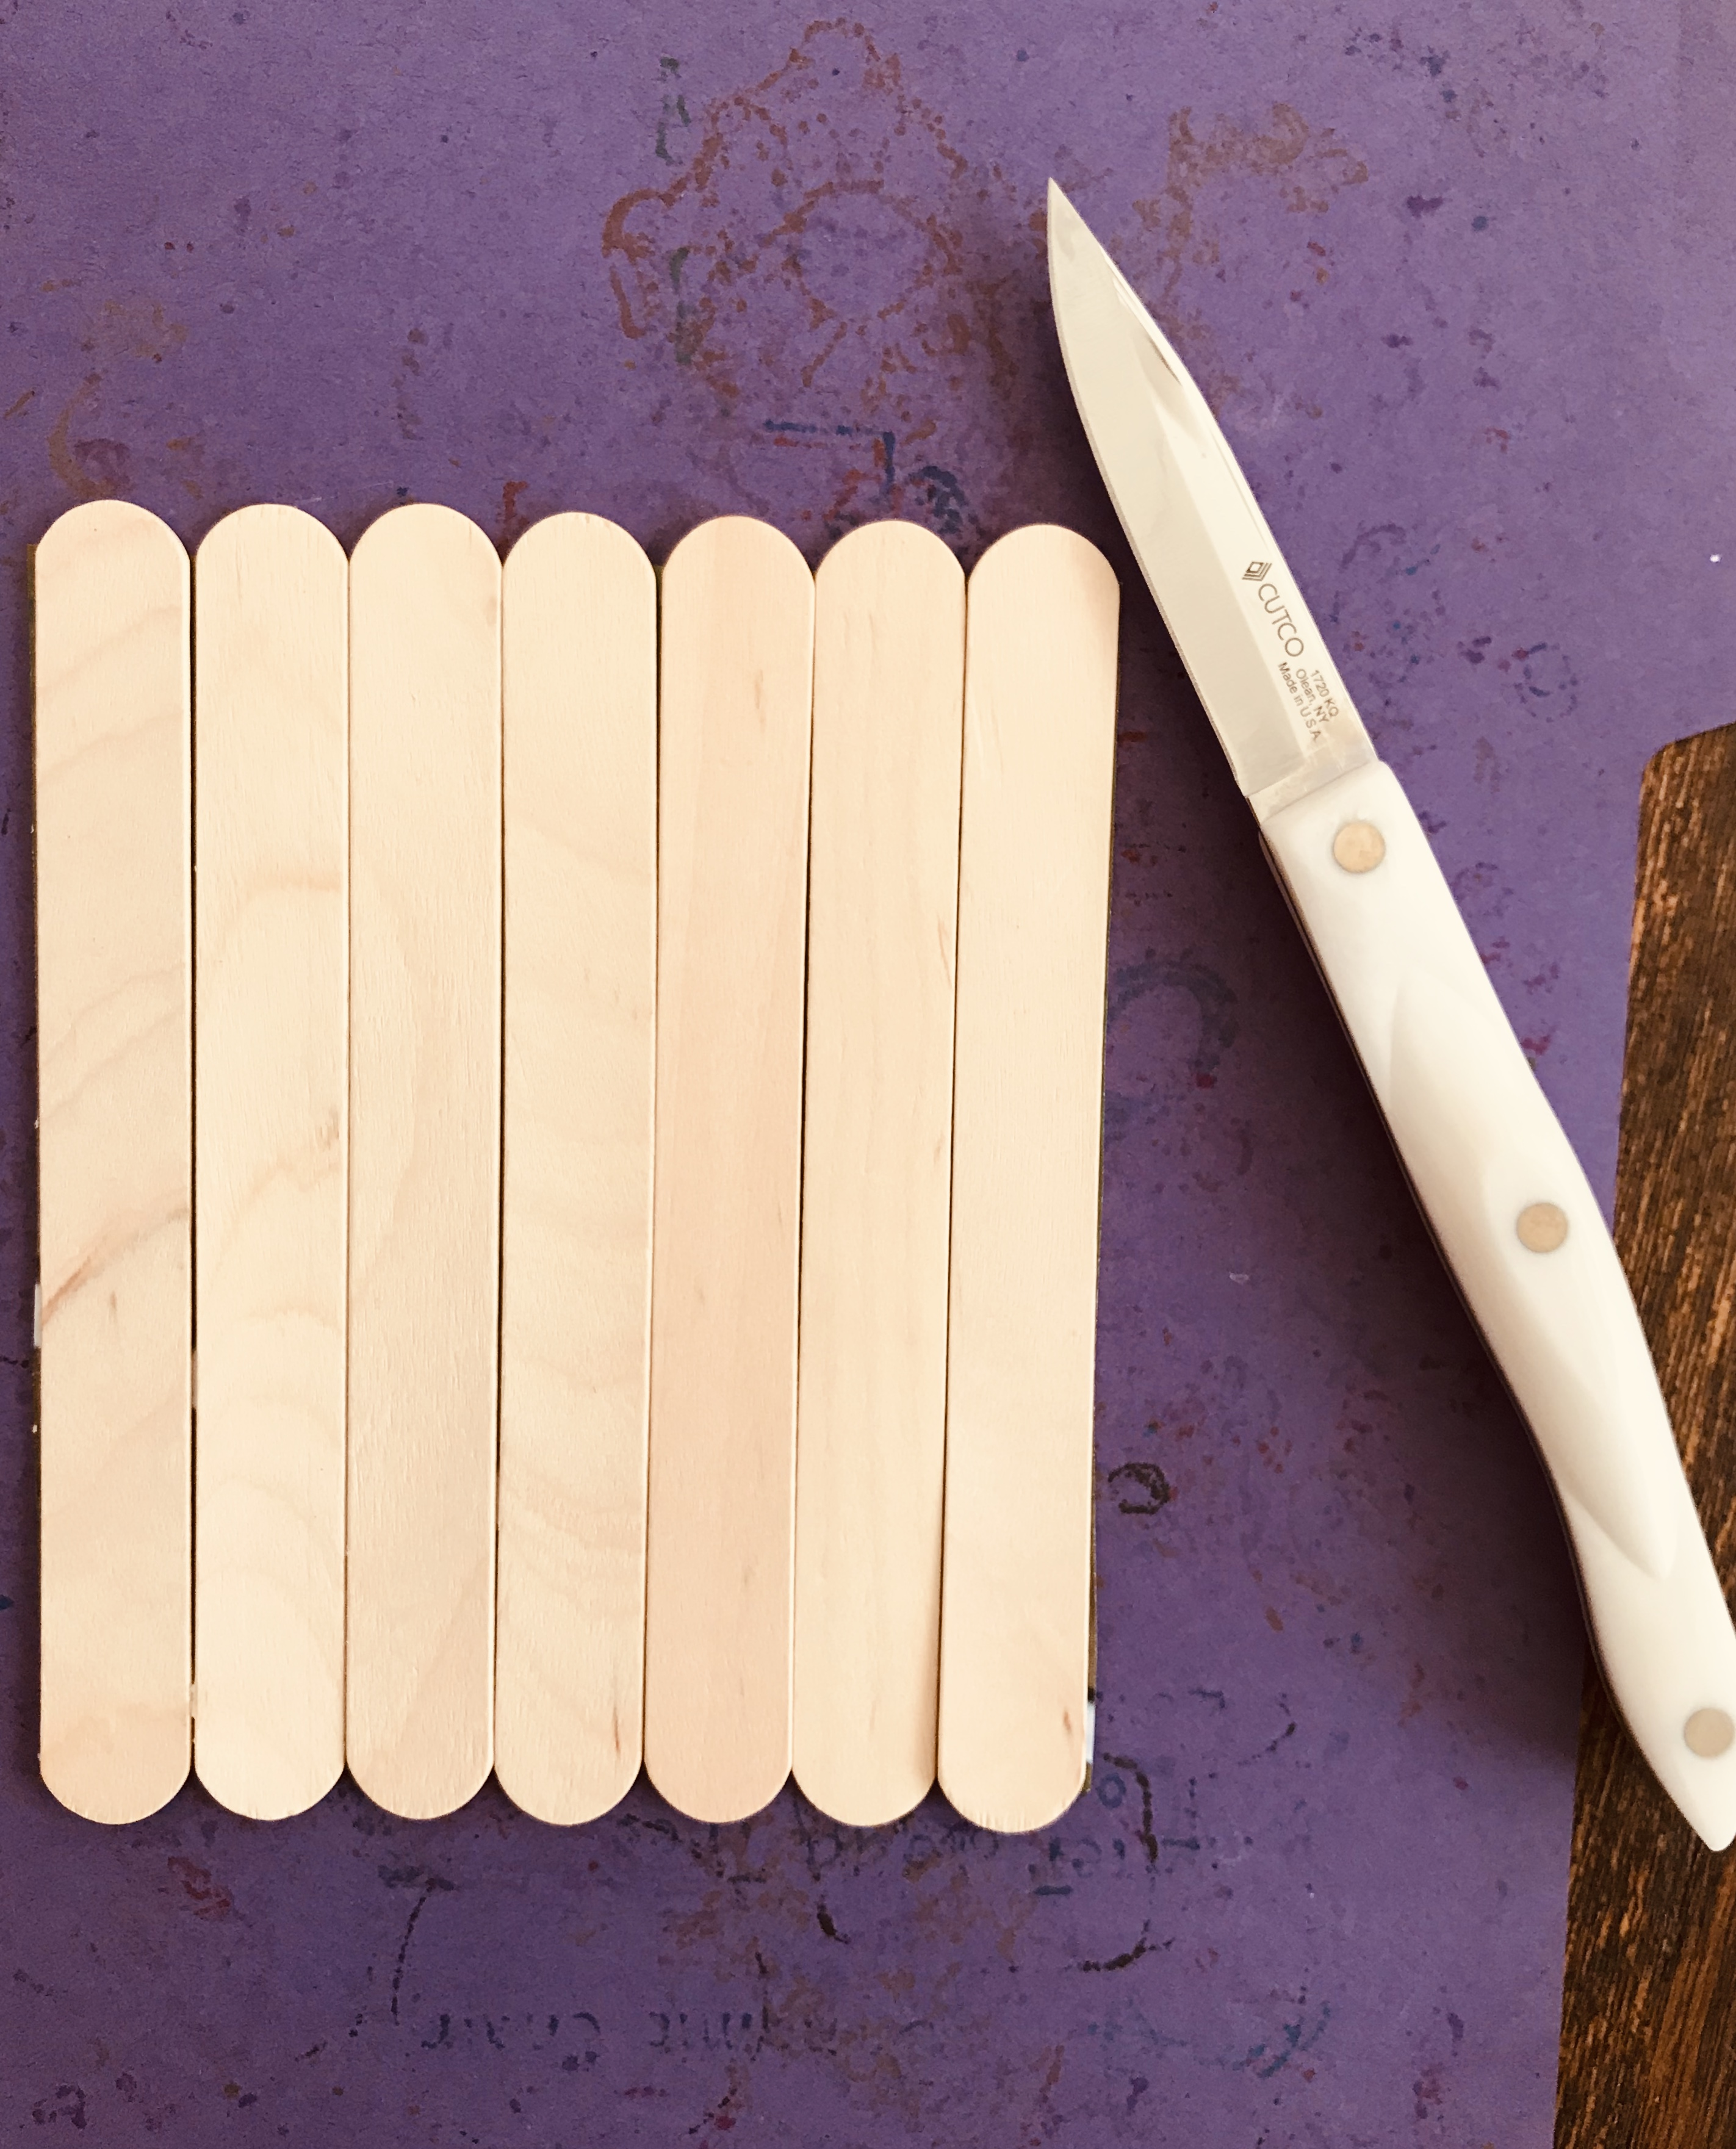 Popsicle sticks and a knife